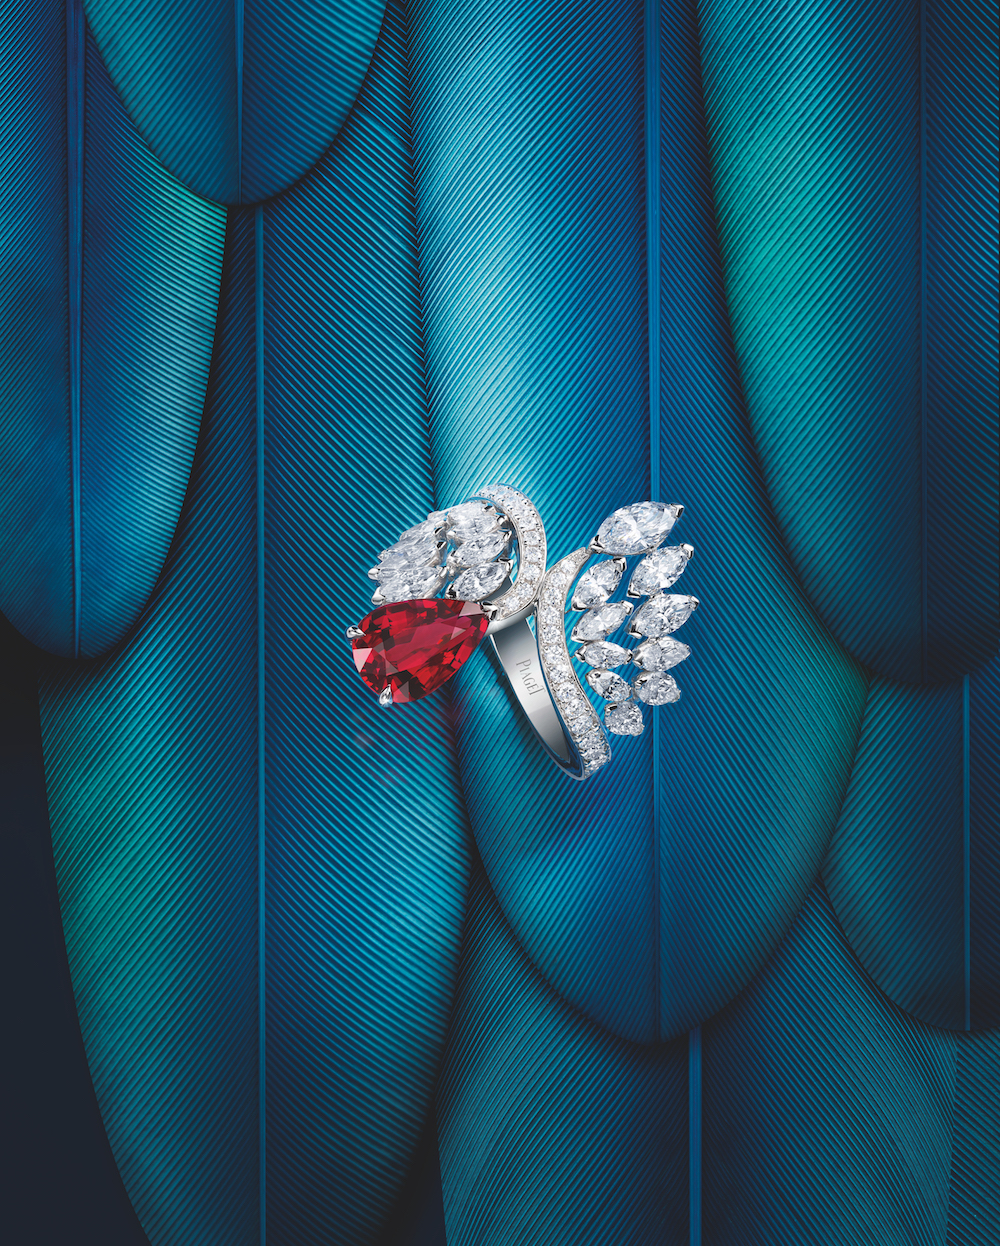 Introducing Piaget Wings of Light